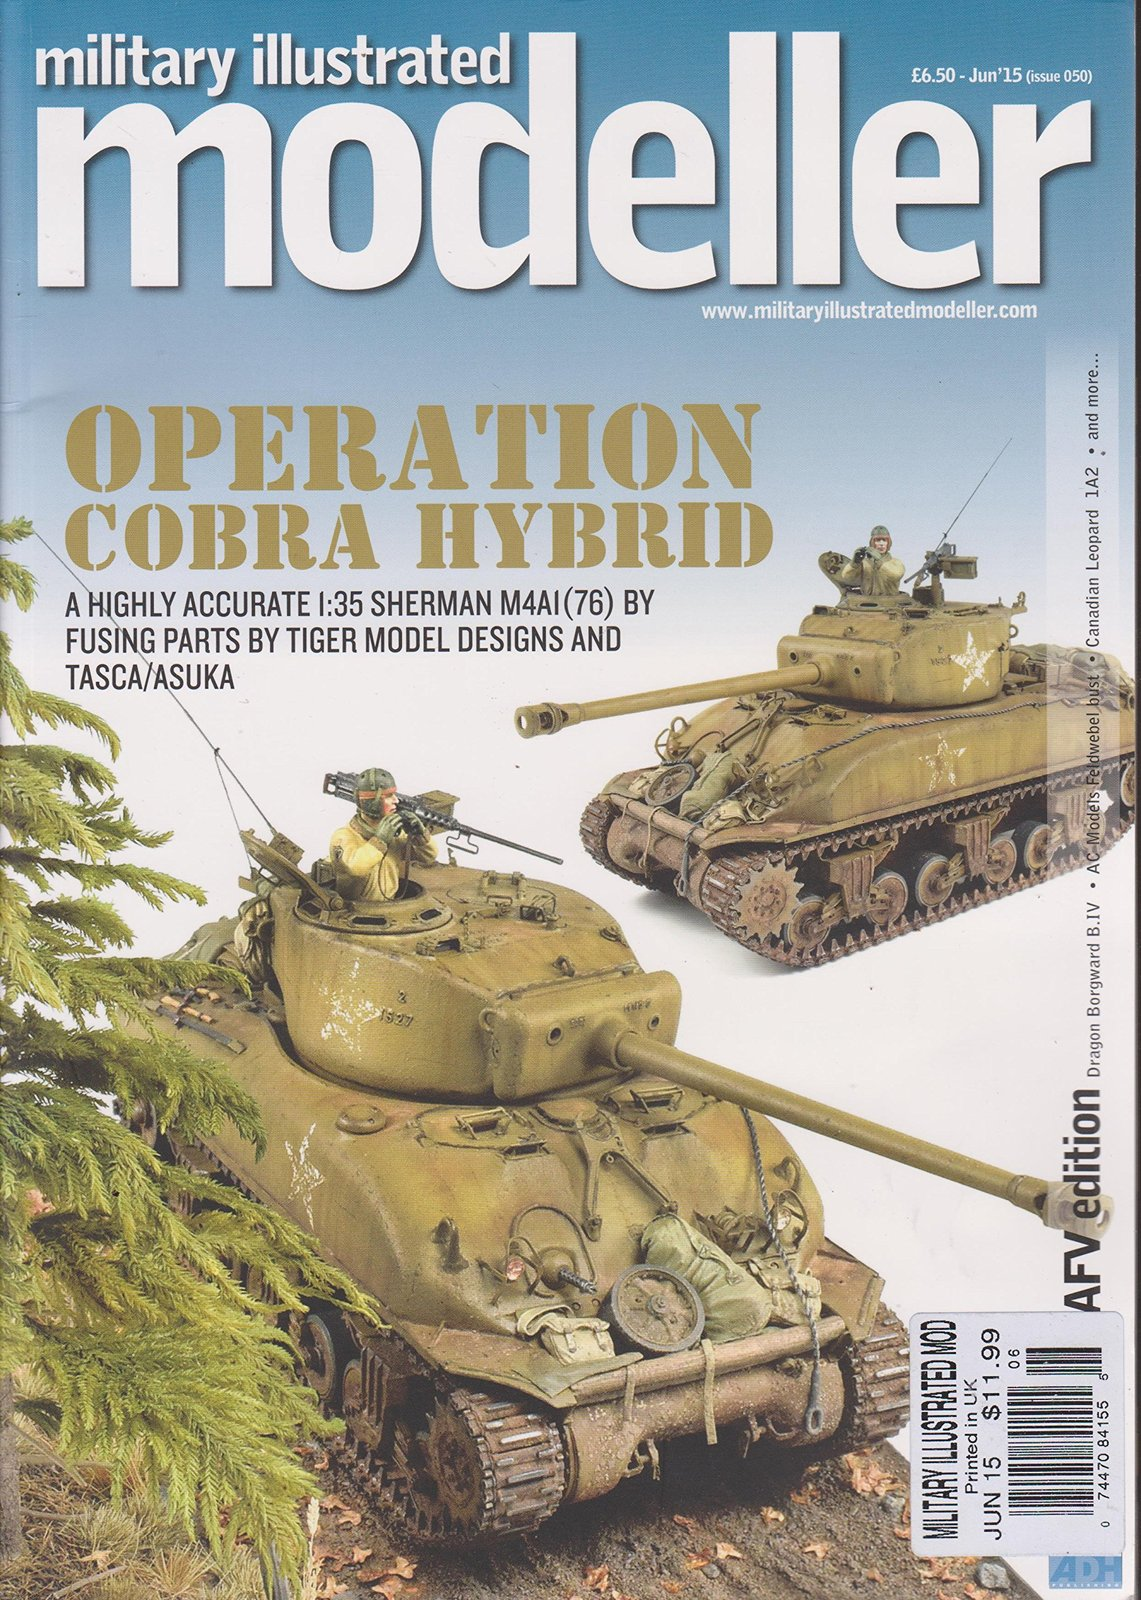 Military Illustrated Modeller Magazine June 2015 [Single Issue Magazine] [Jan...